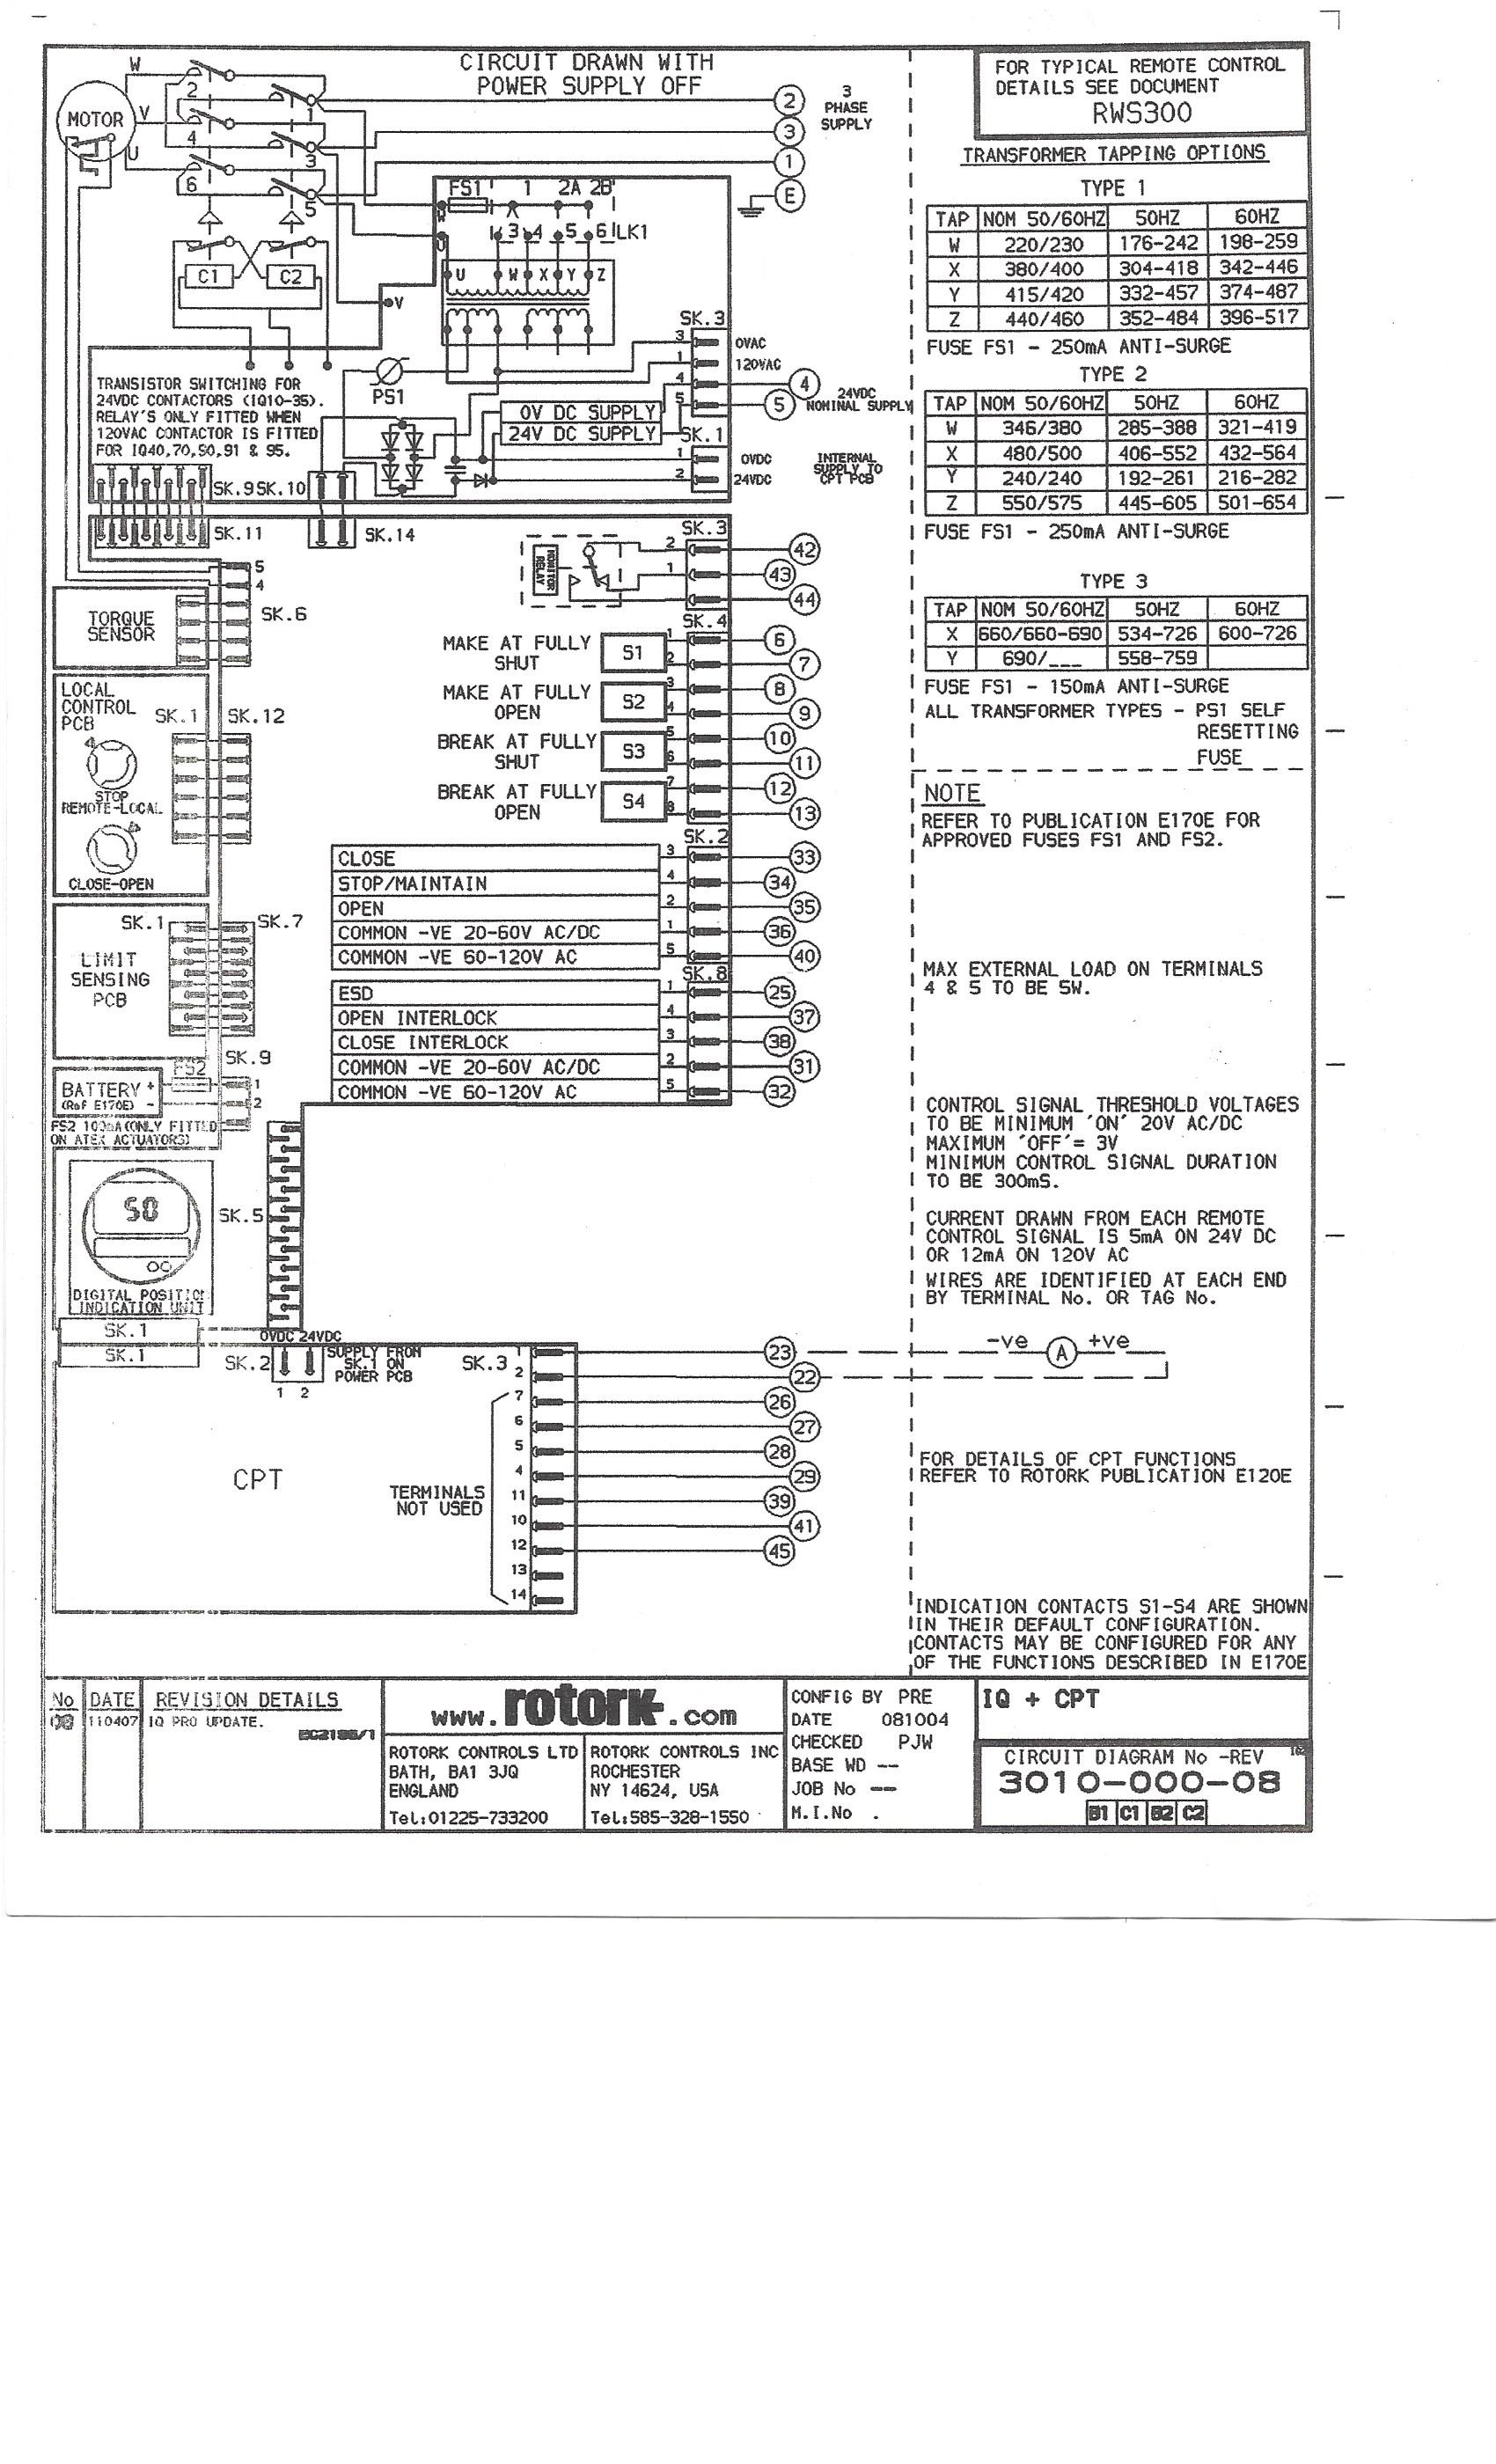 VELAN2 rotork iqt wiring diagram siemens wiring diagram \u2022 wiring diagrams scion iq wireing diagrams at cos-gaming.co